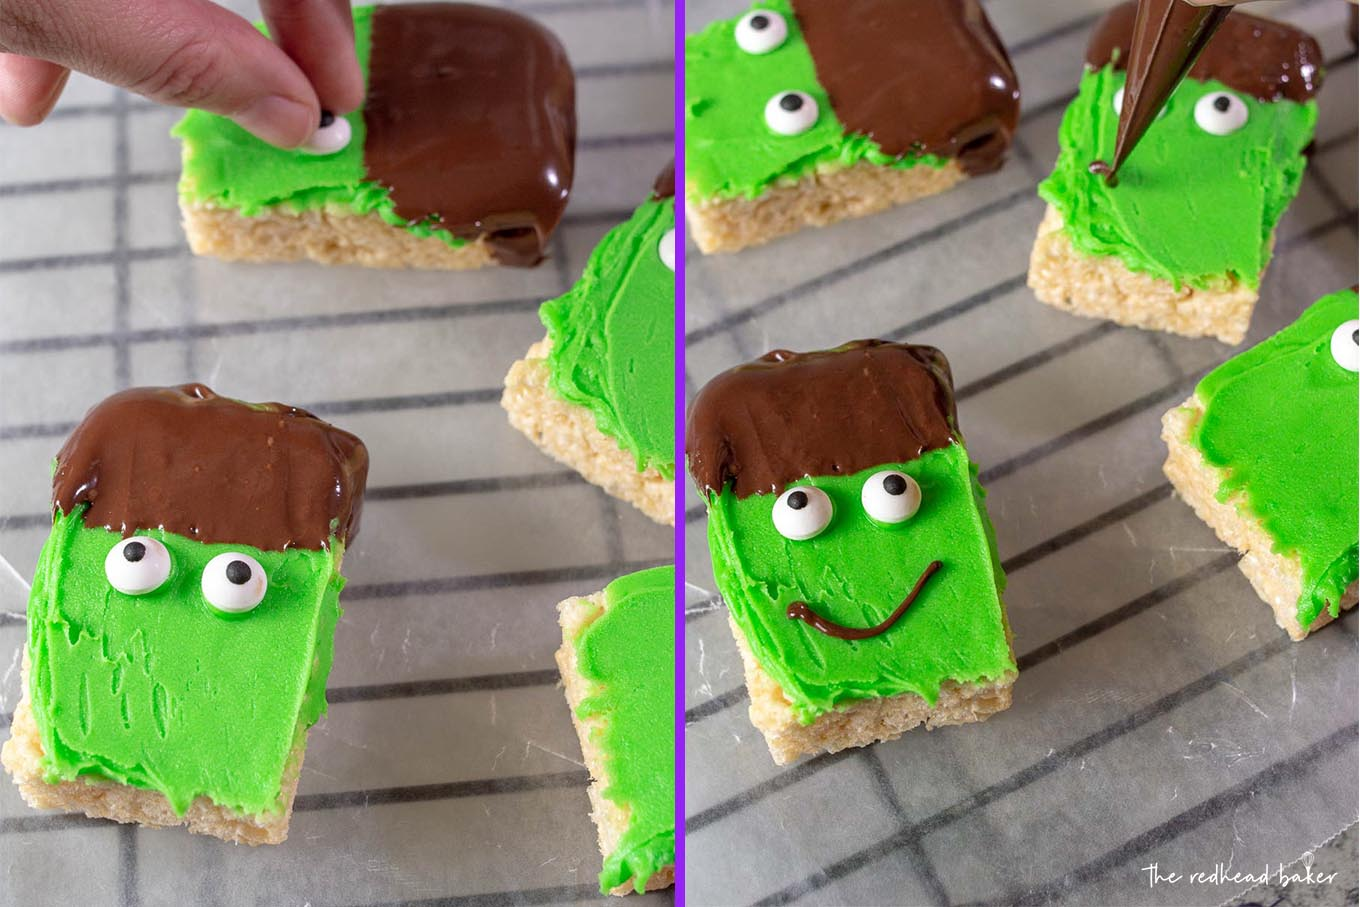 A collage with candy eyes being applied to the Frankenstein crispy cereal treats on the left, and mouths being drawn on the cereal treats in chocolate on the right